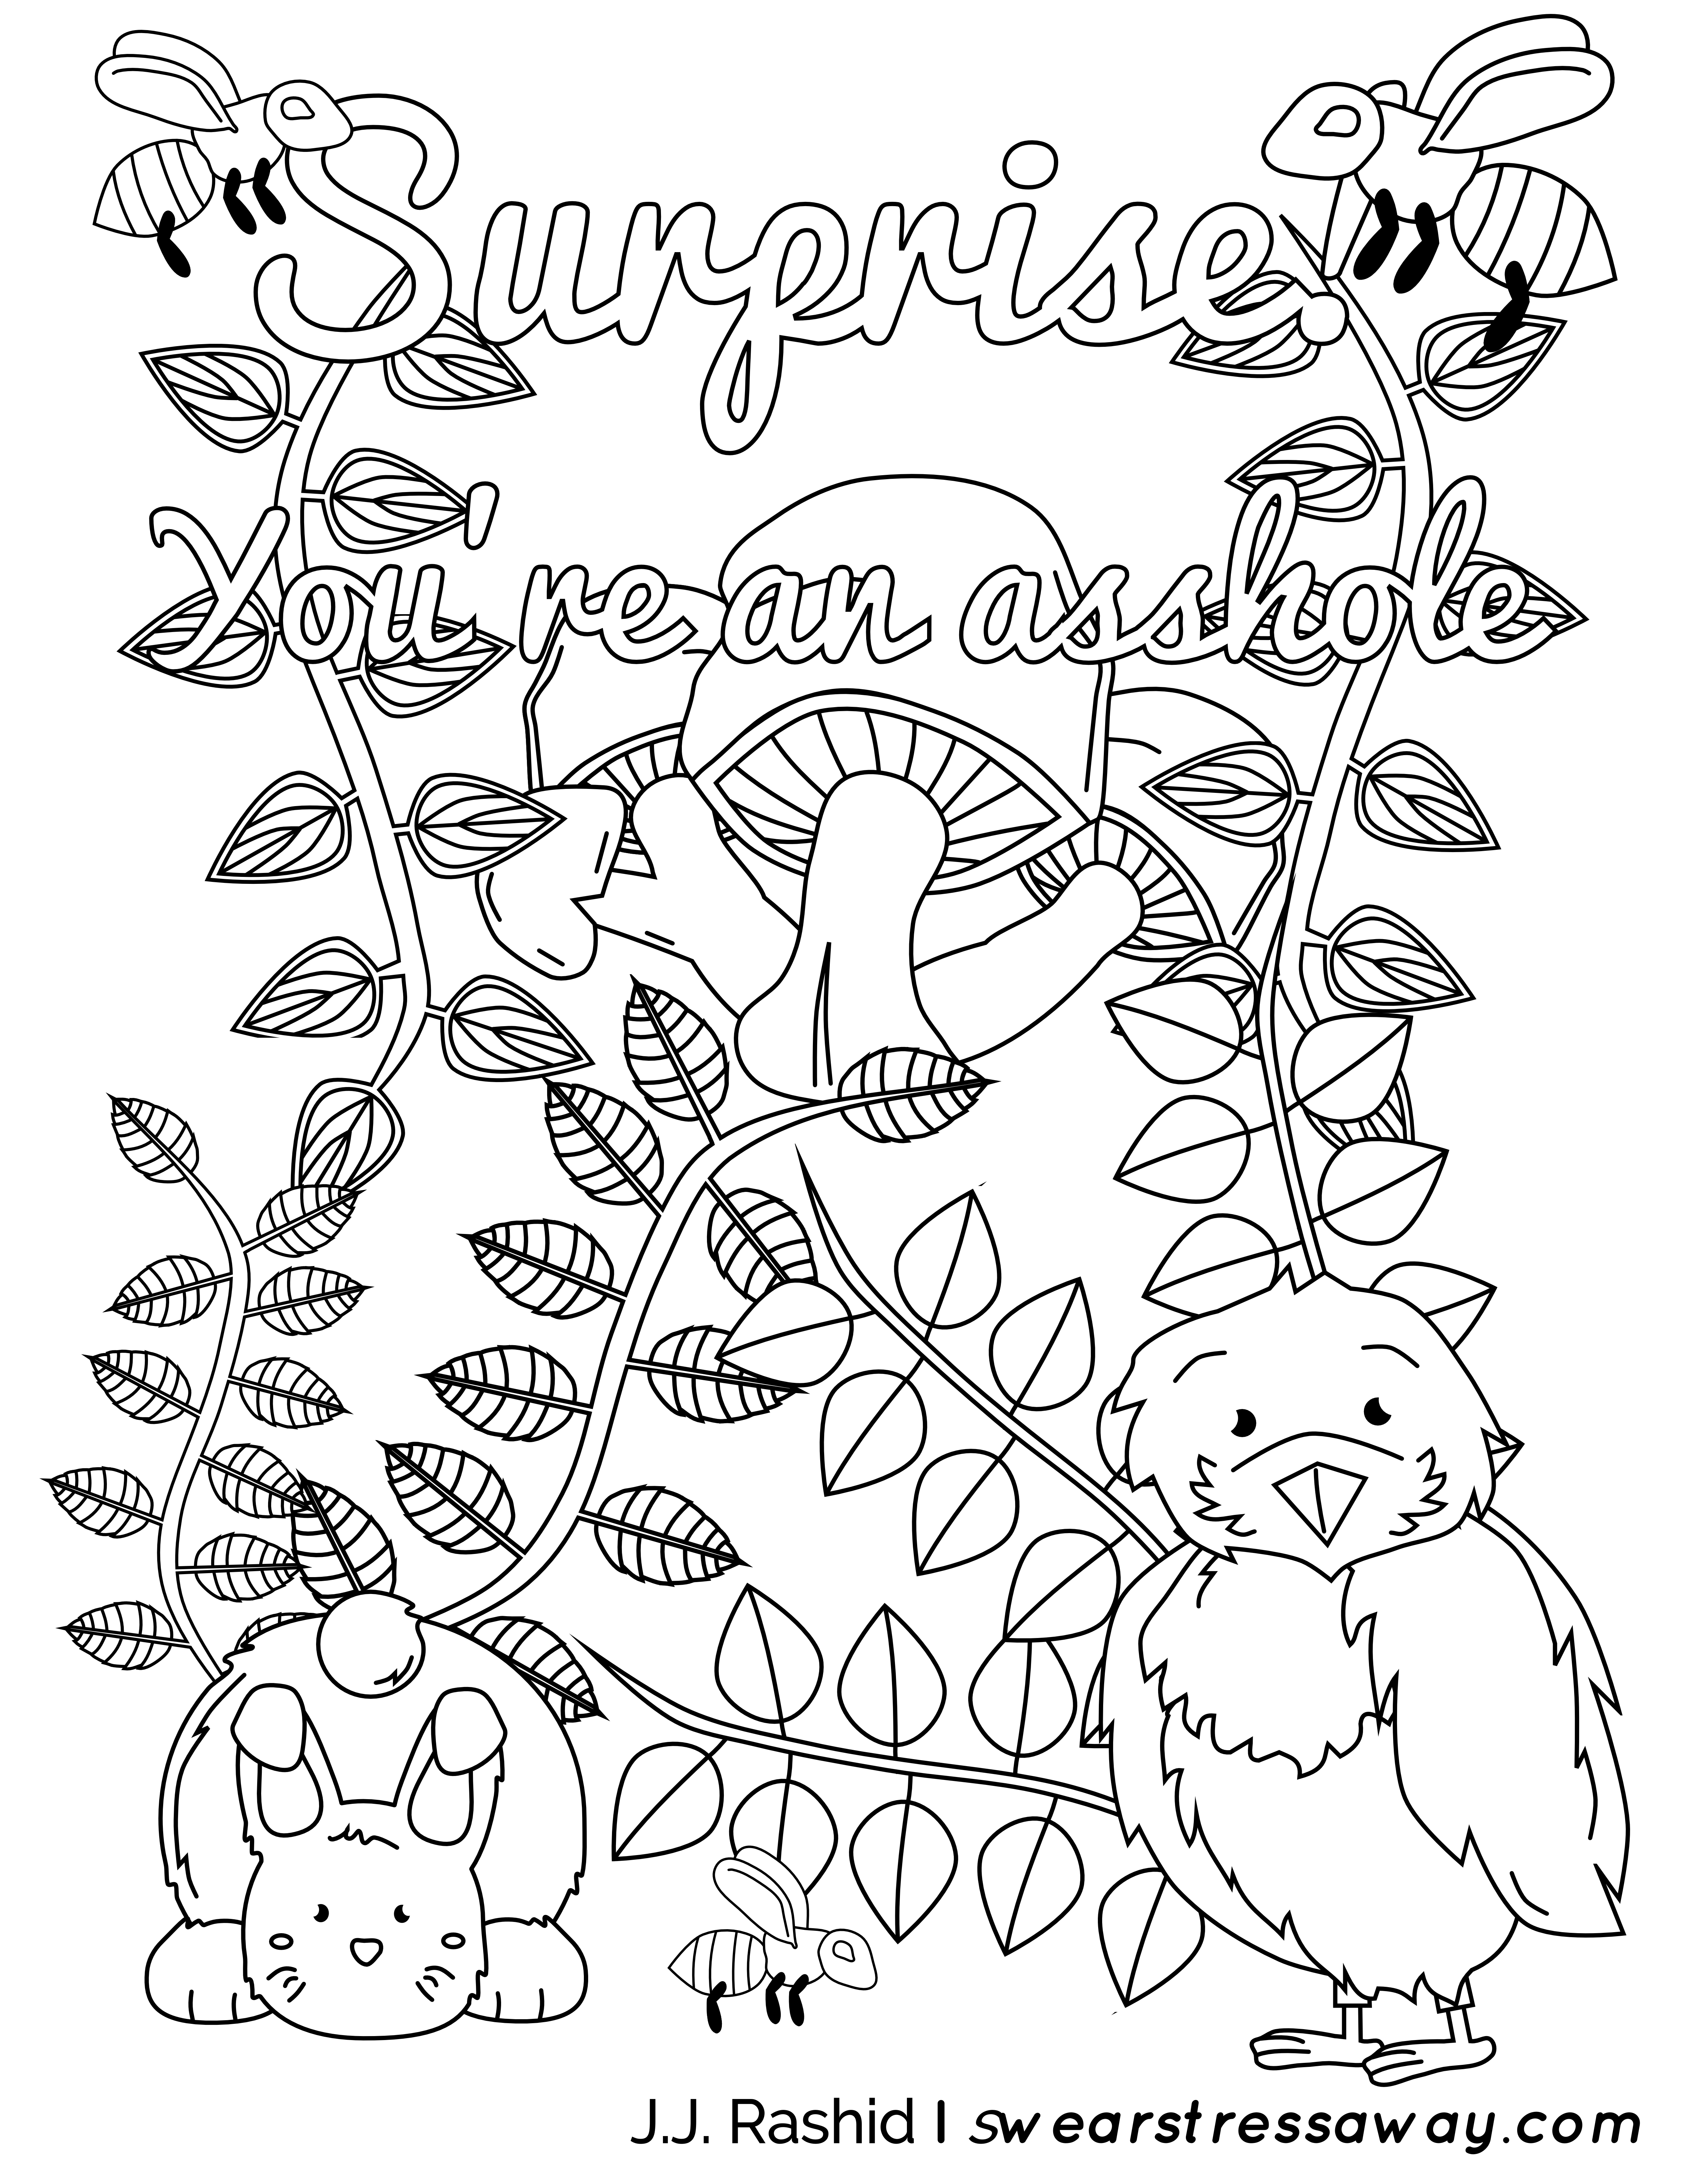 Surprise youre an asshole Adult Coloring Page Screw You As